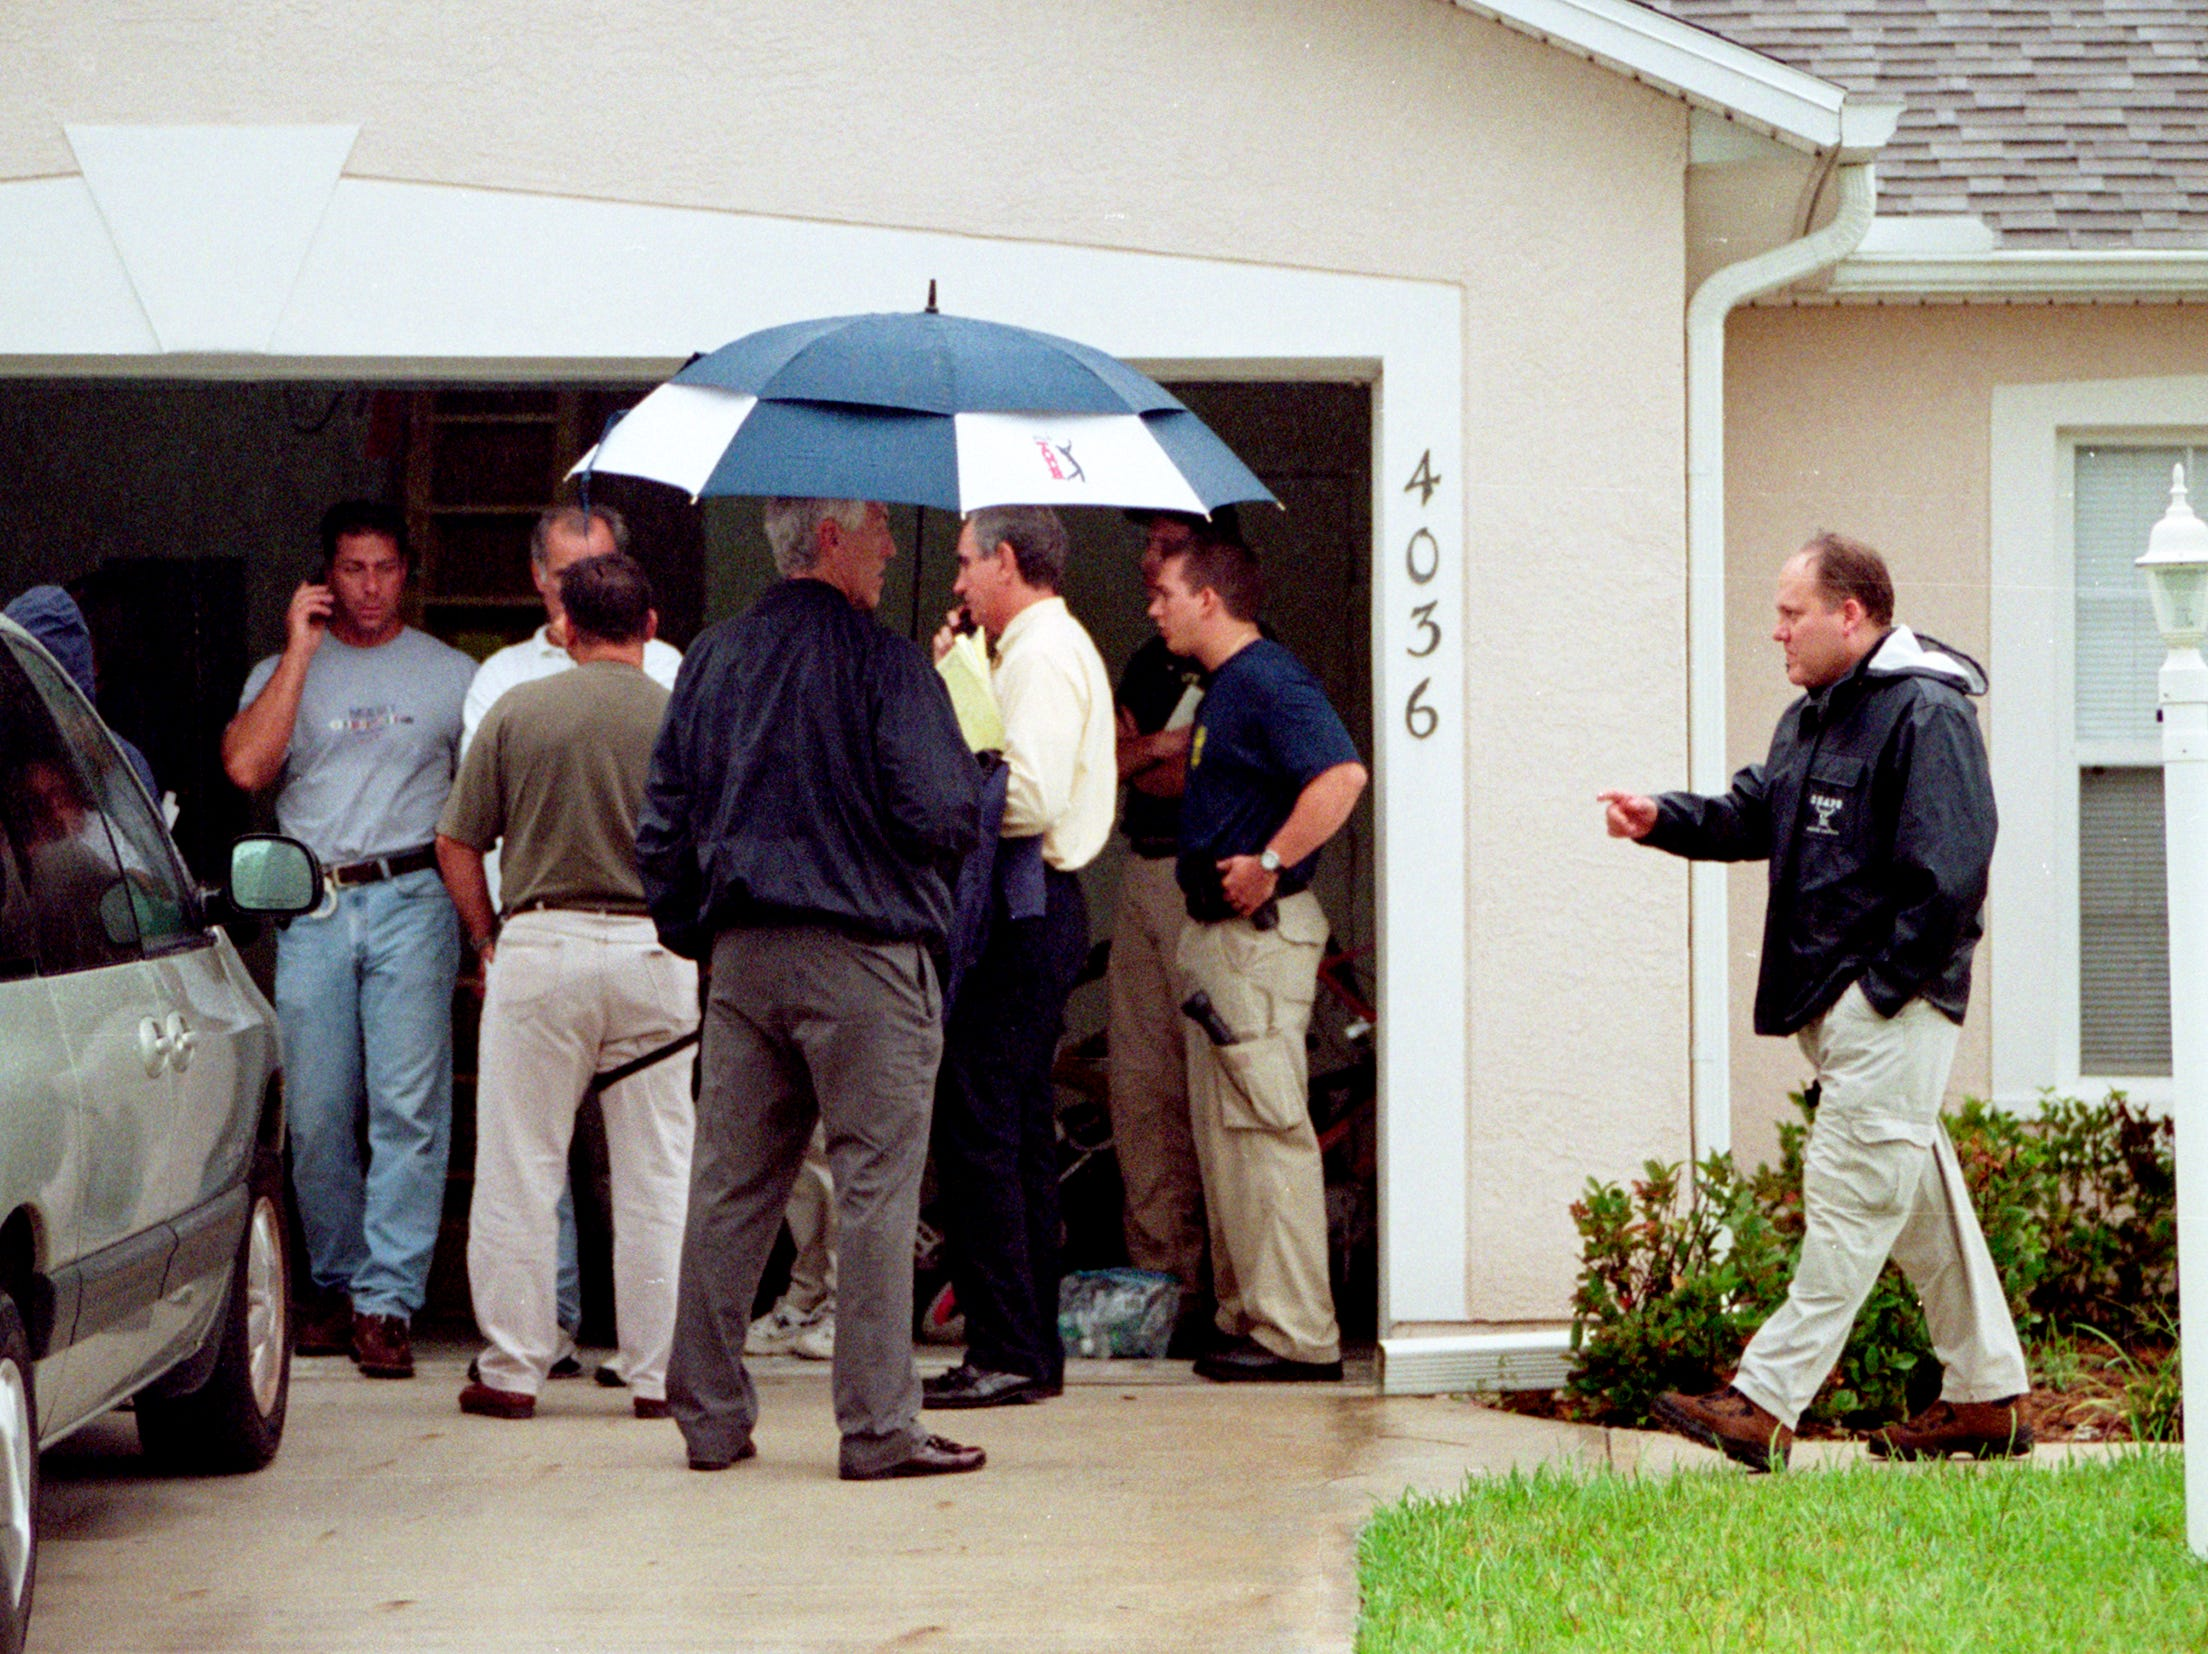 September 12, 2001 - The day after the Sept. 11 terror attacks, federal authorities questioned a Vero Beach man after dozens of FBI agents descended on local neighborhoods, searching homes and towing away vehicles.